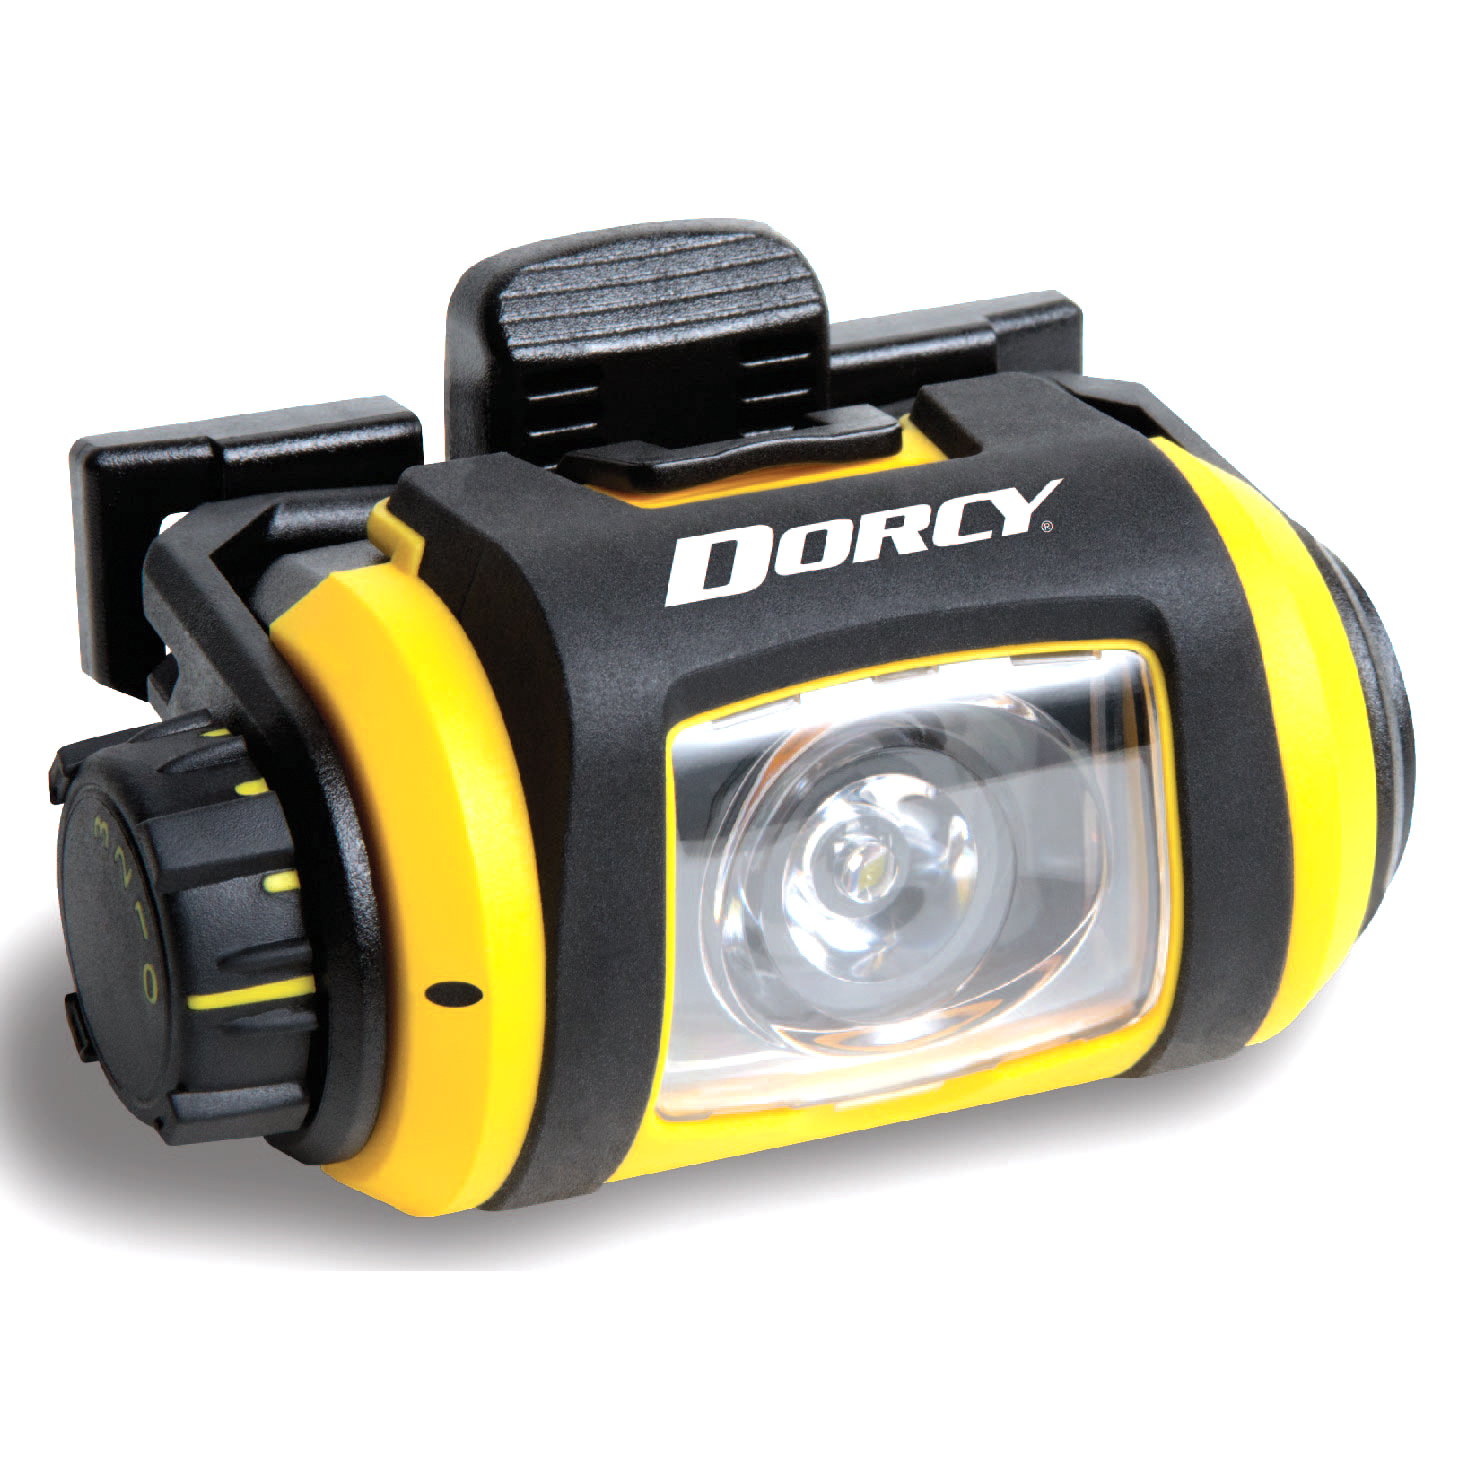 Dorcy Pro Series 200-Lumen Water Resistant LED Headlight with 180-Degree Swivel and 3 Brightness Levels, Yellow and Black (41-2612)